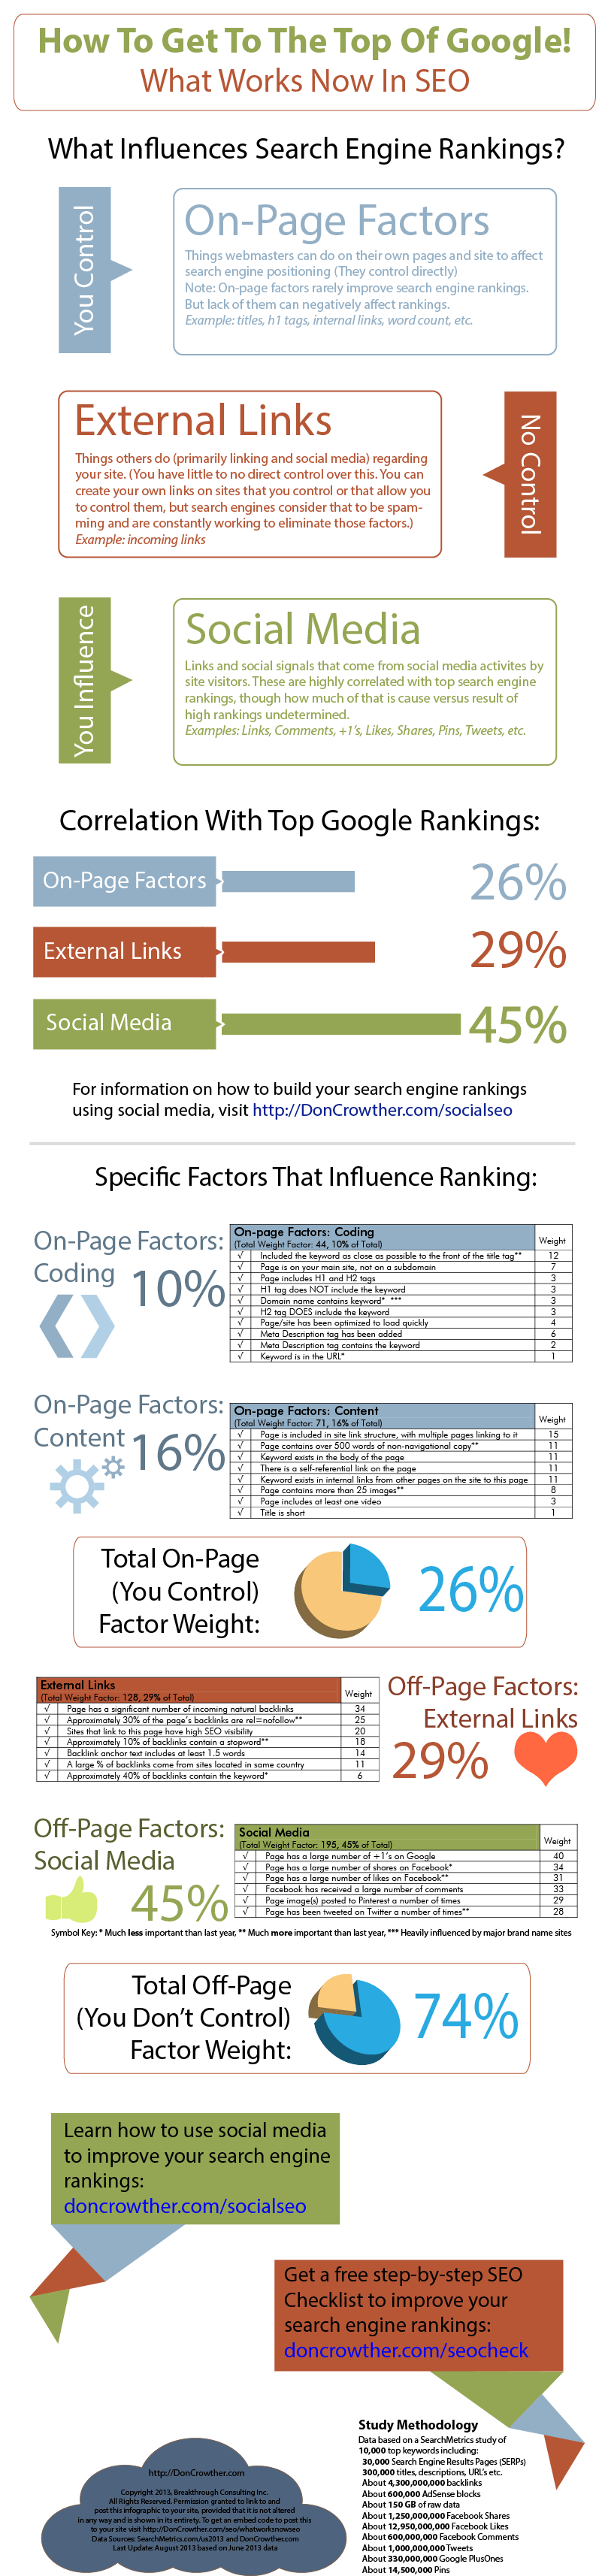 How To Get To The Top Of The Google Rankings – SEO Infographic - An Infographic from DonCrowther.com